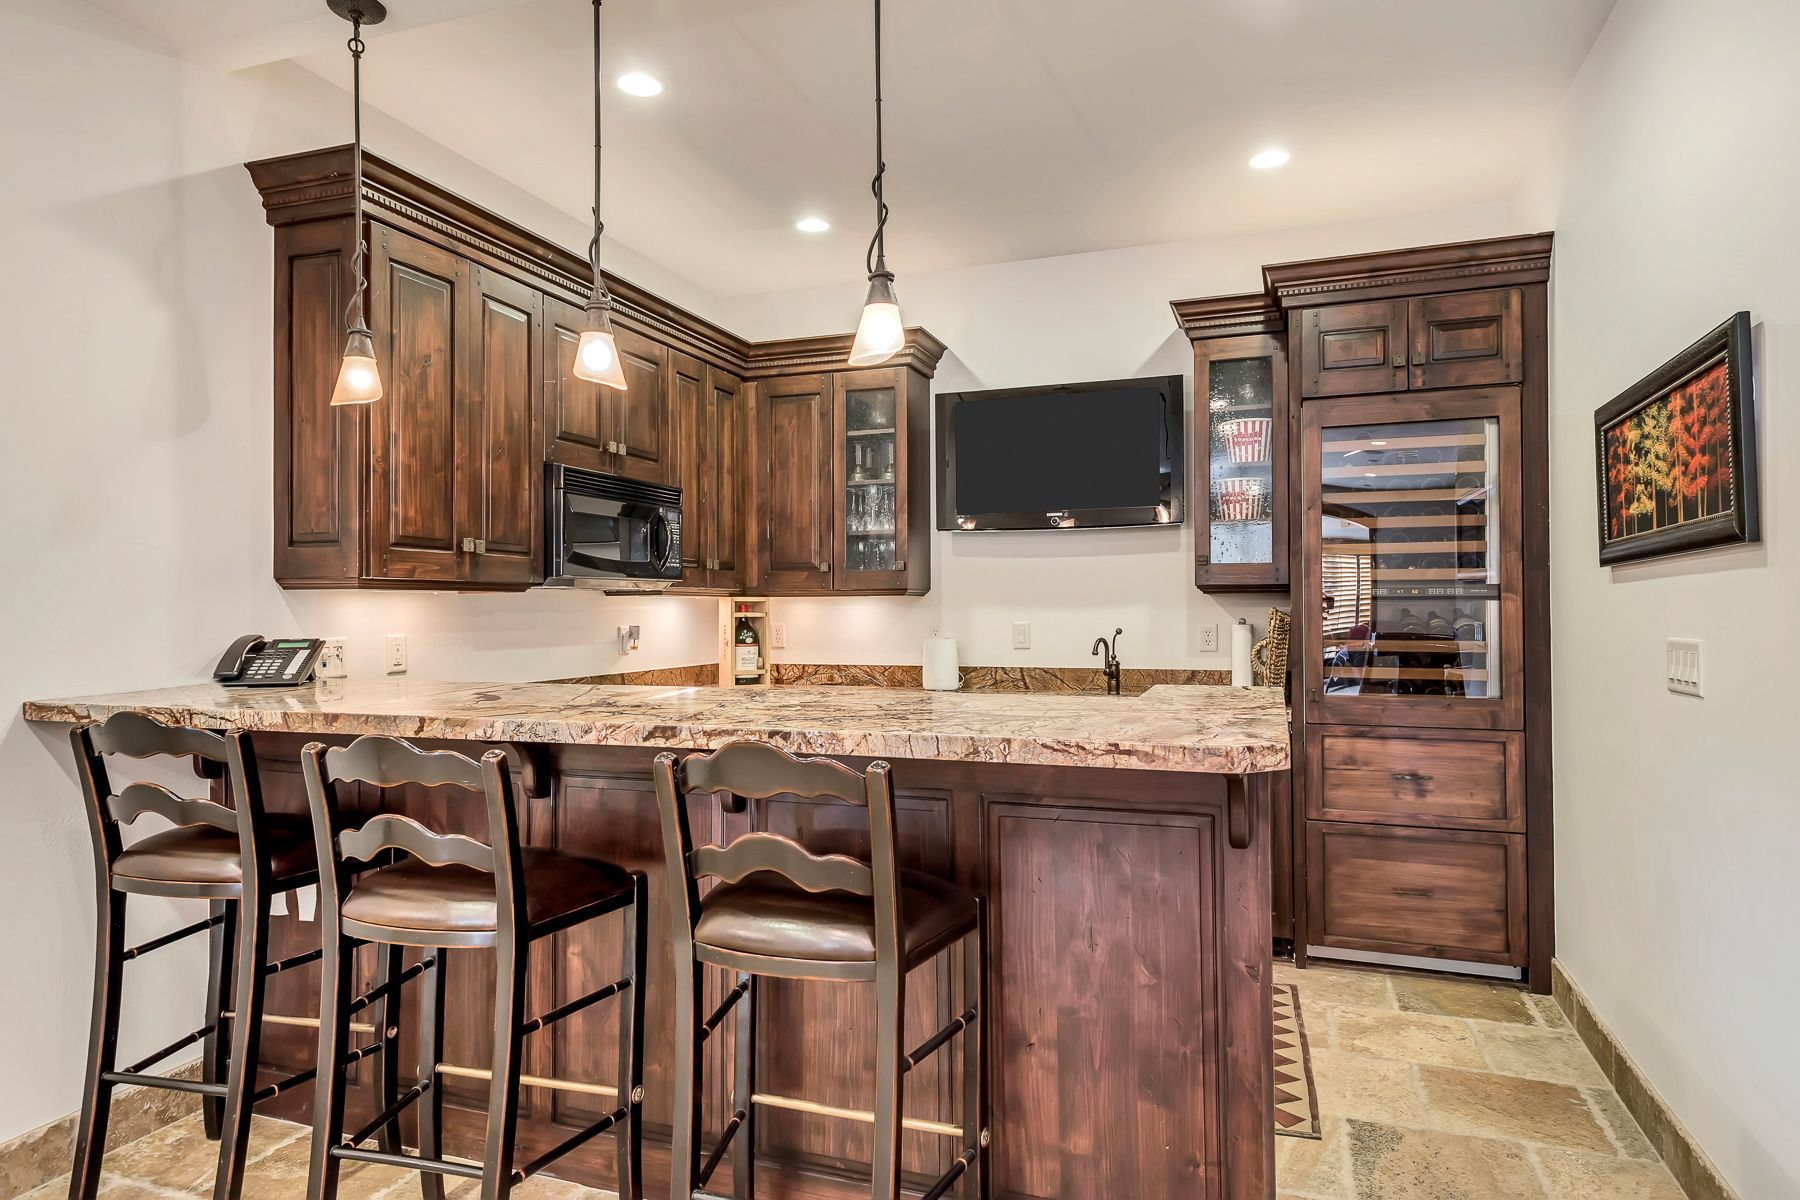 The lower level walkout boasts a second full kitchen, 2 junior suites, a family room, and a den. #Kitchen #KitchenDesign #KitchenDecor #WindermereUtah #UtahHomes #HomesForSale #WoodenCabinets #WoodenCabinetry #DreamHome #ParkCityHomes #KitchenCabinets #DreamKitchen